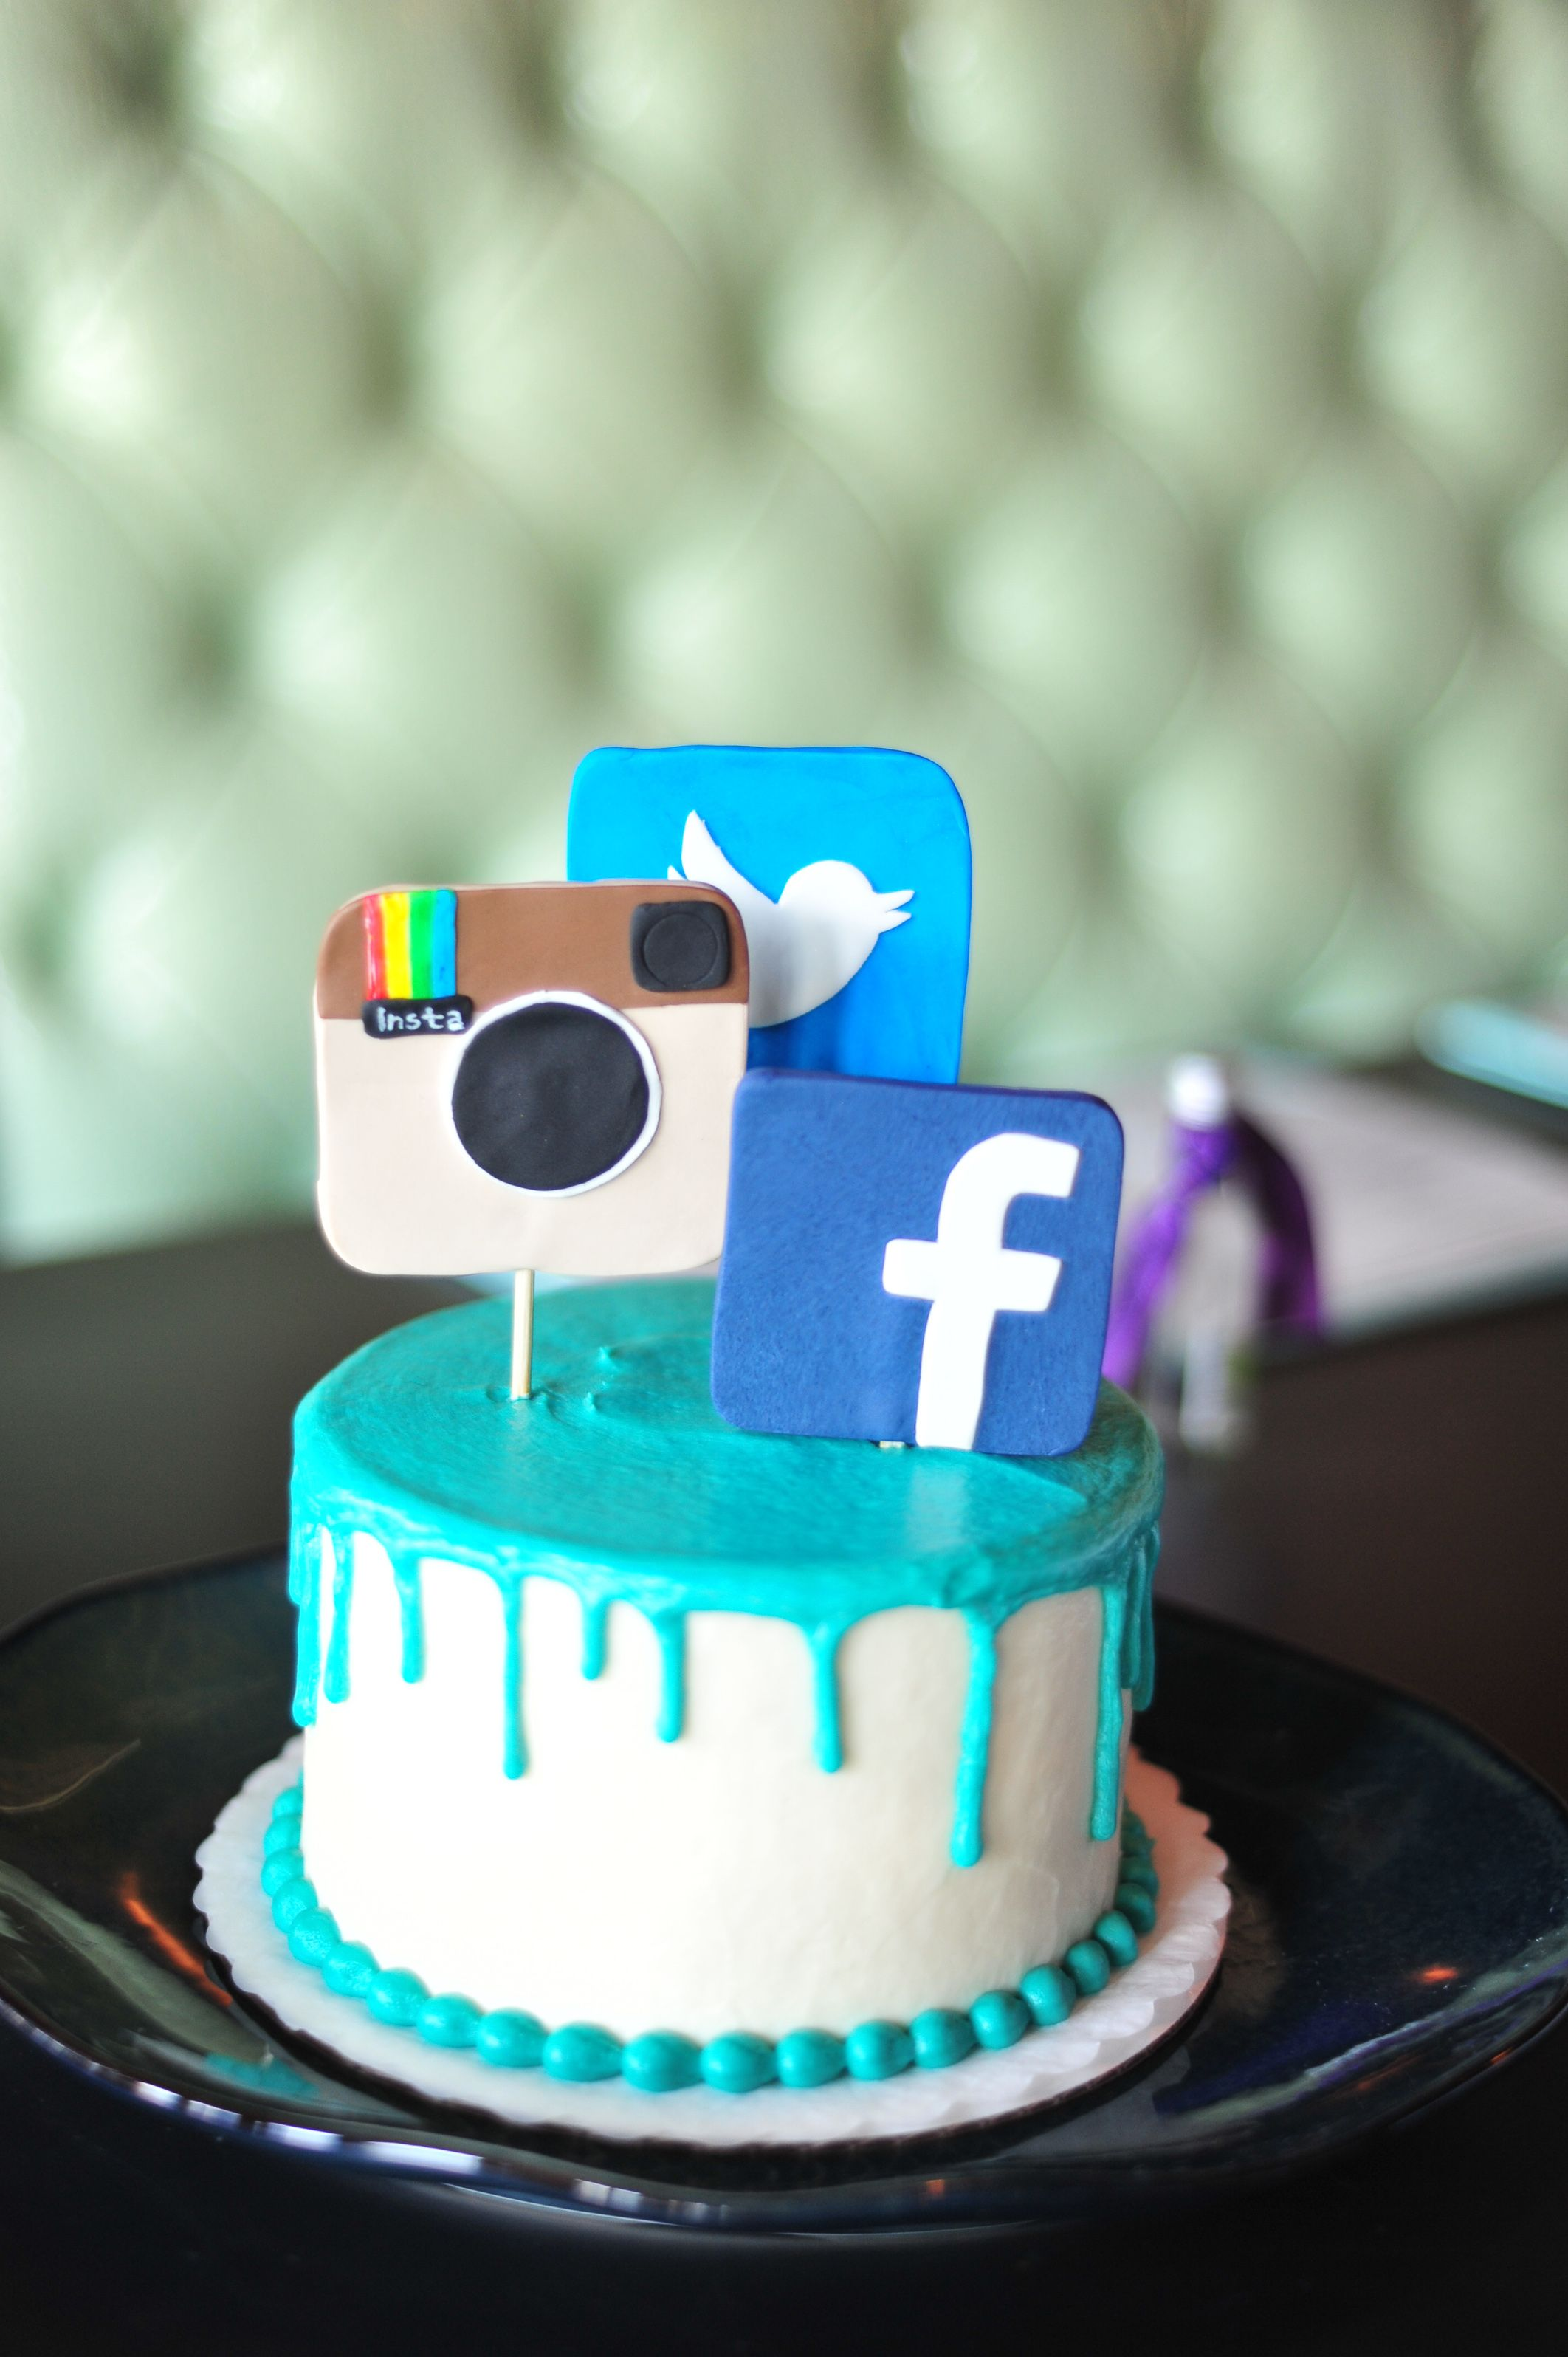 Selfie Cake Social Media Facebook Instagram Twitter By Annies Culinary Creation Dallas Wedding Photographer